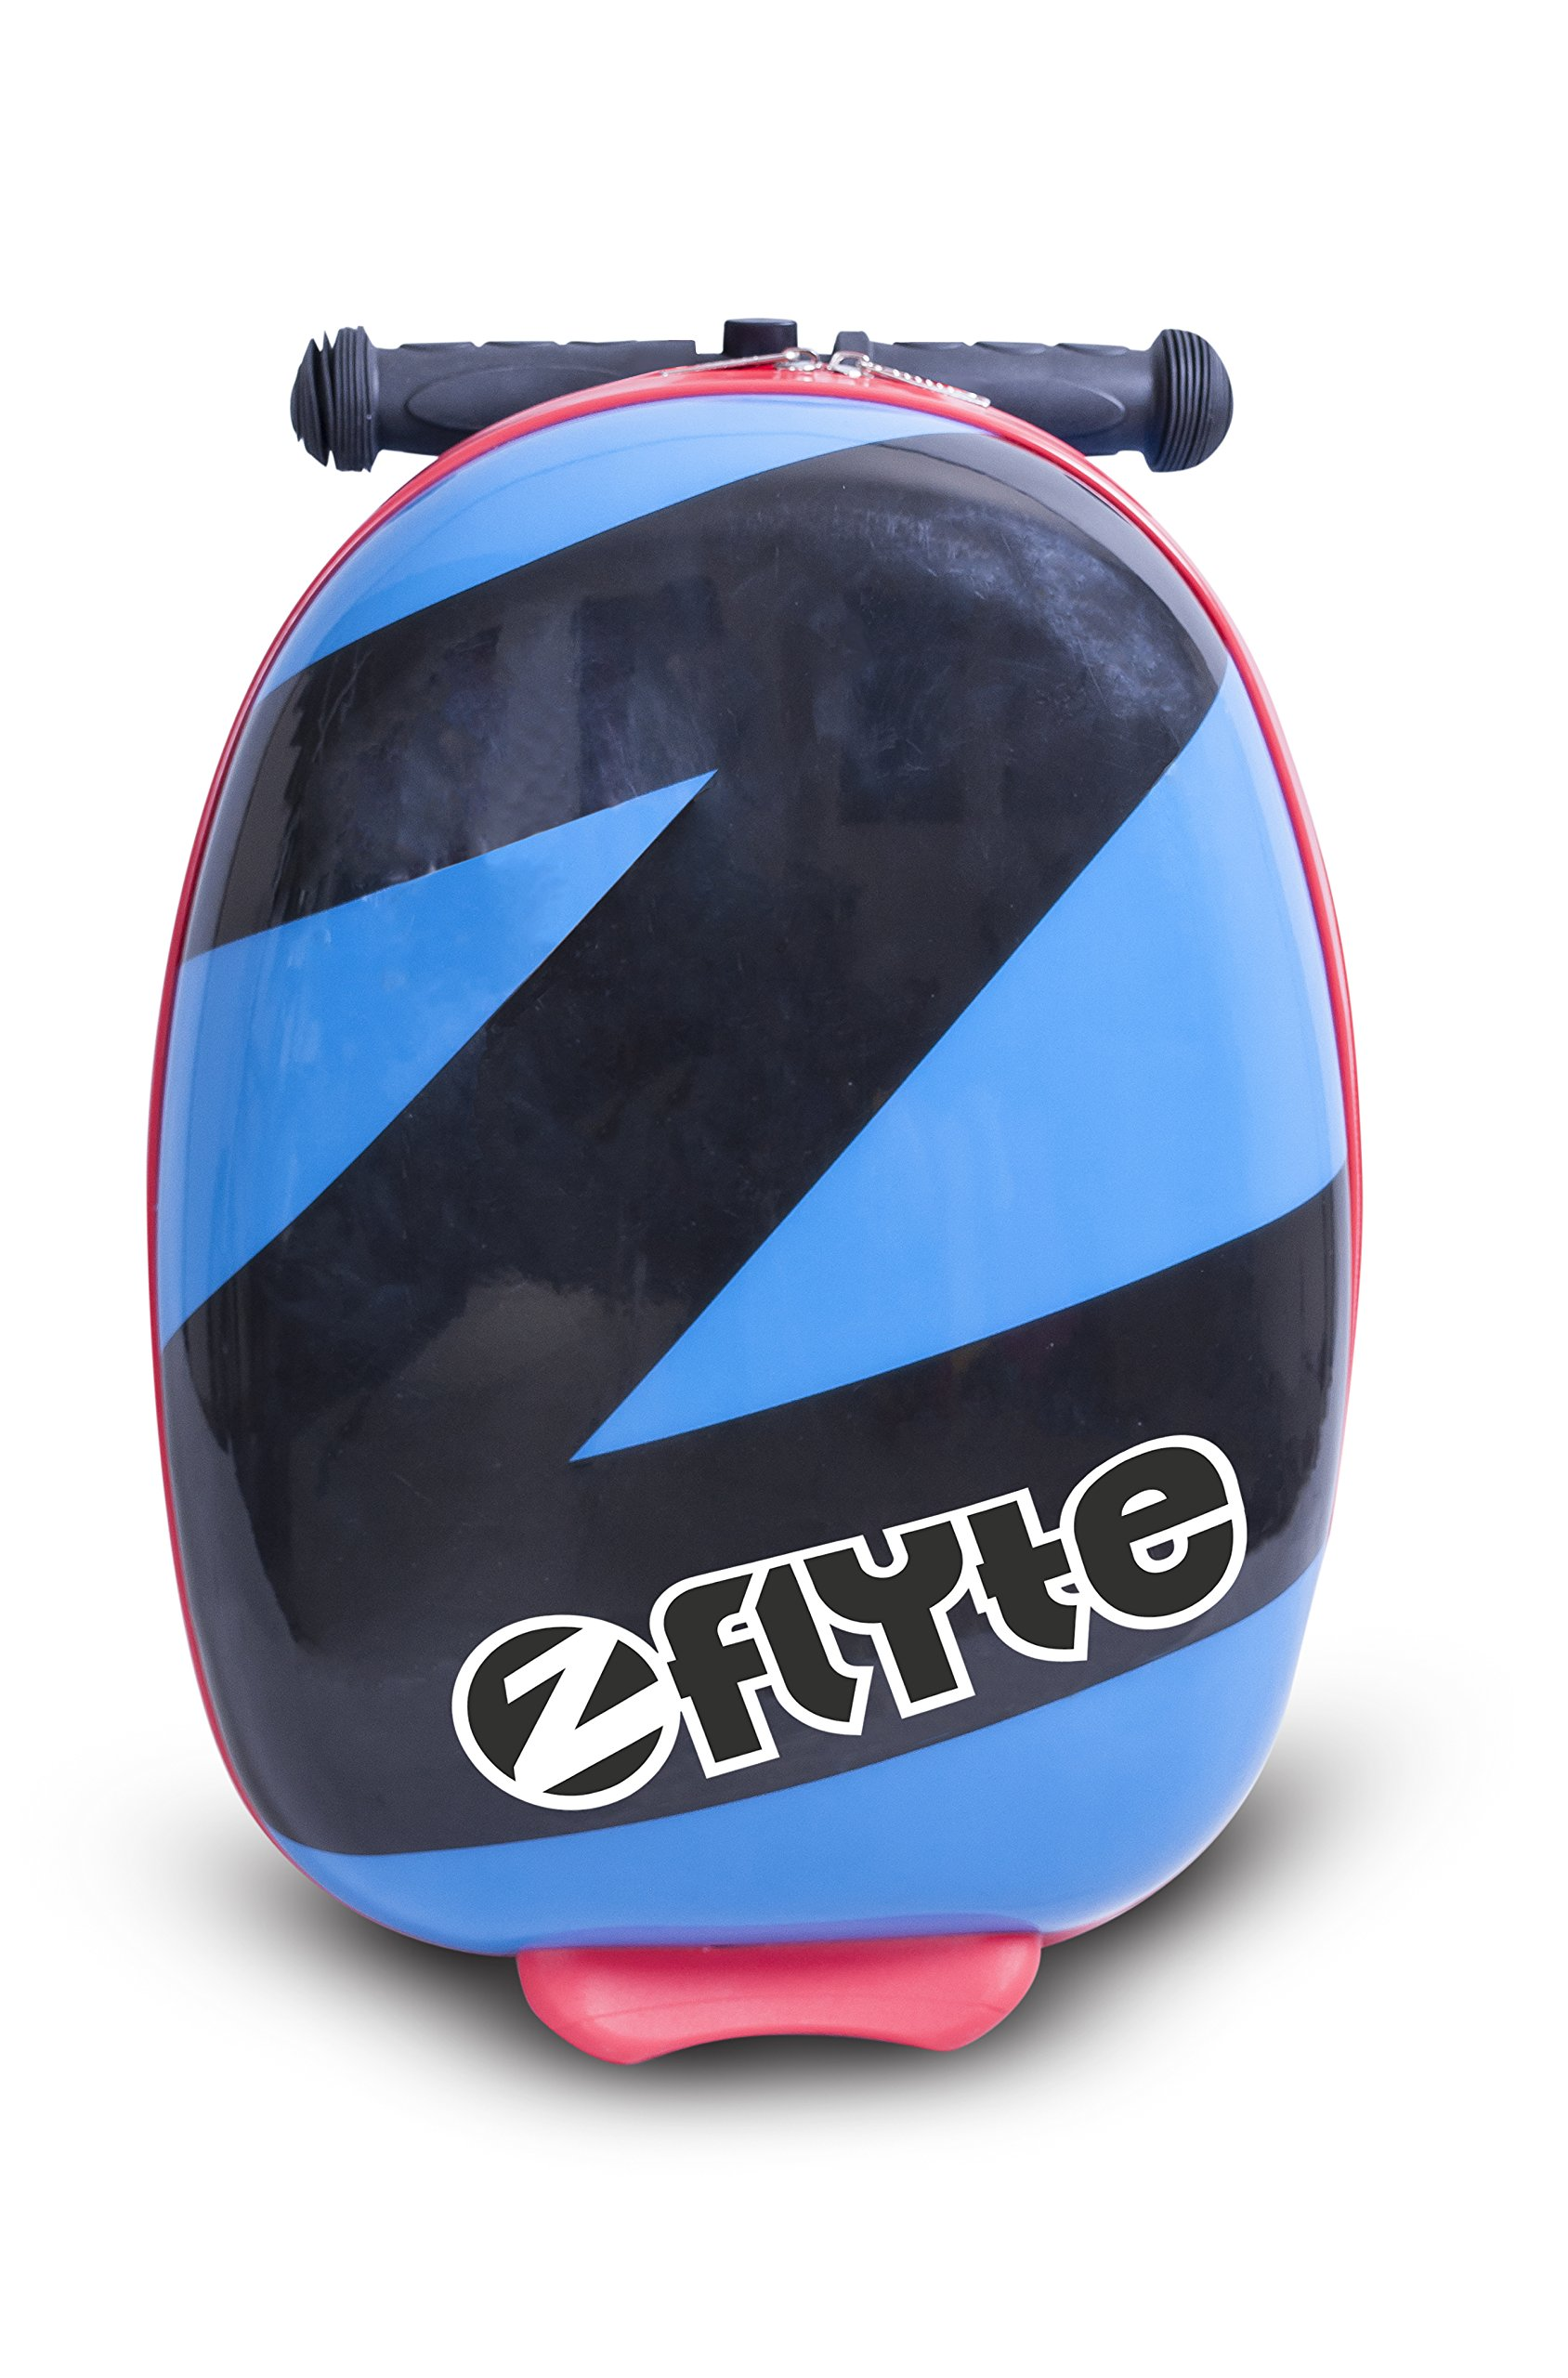 Zinc-Flyte-Midi-Scooter-Kindergepck-Blau-blau-Carry-on